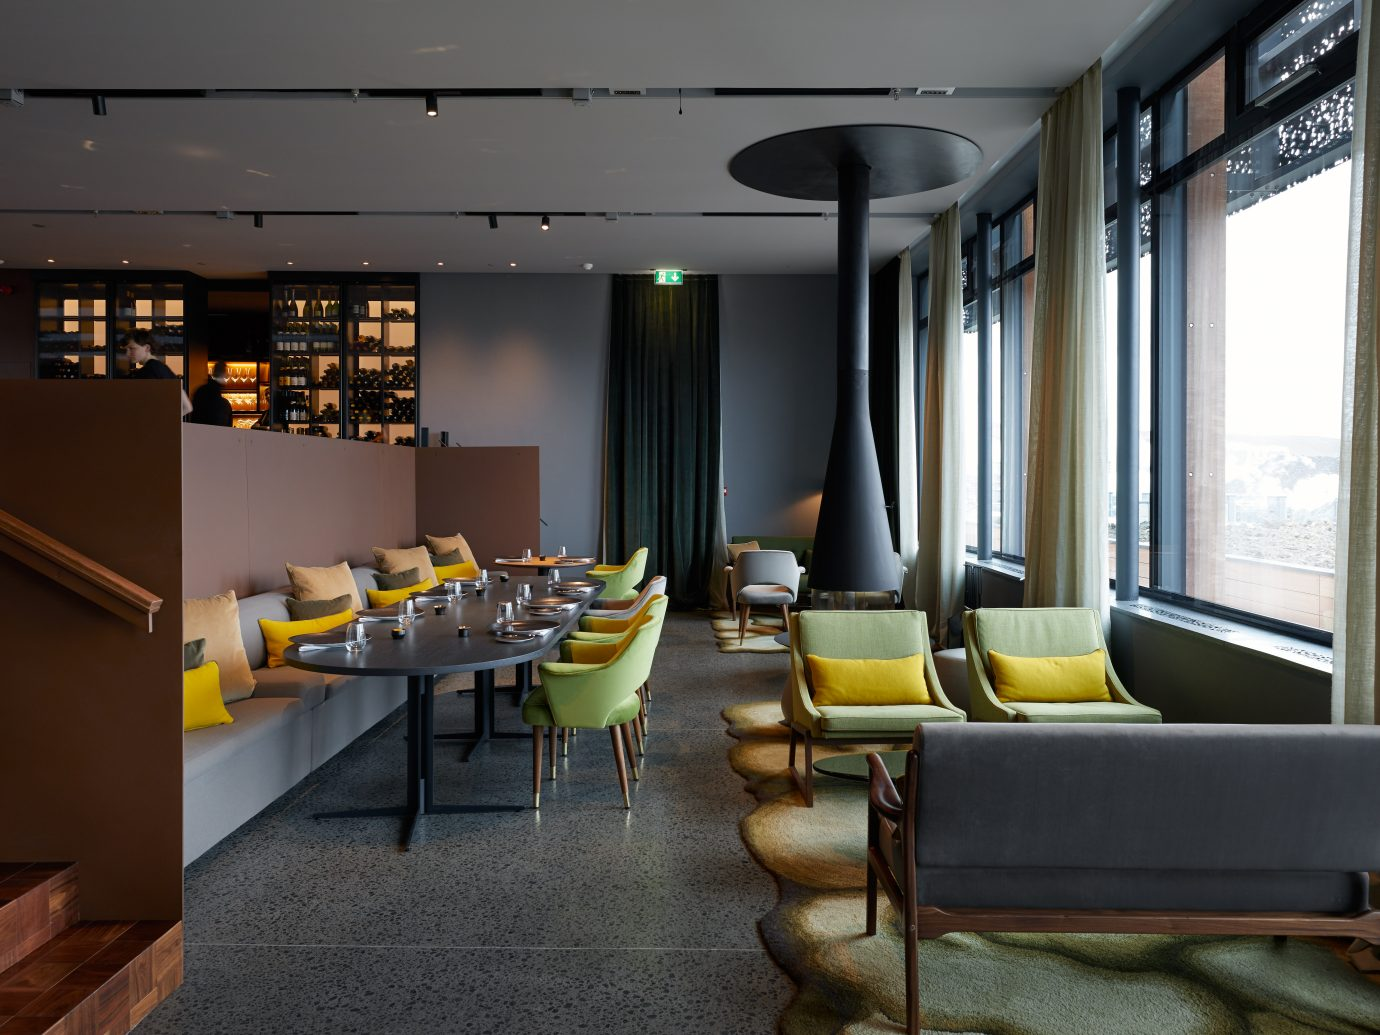 eating space with dark interior but funky colored furniture